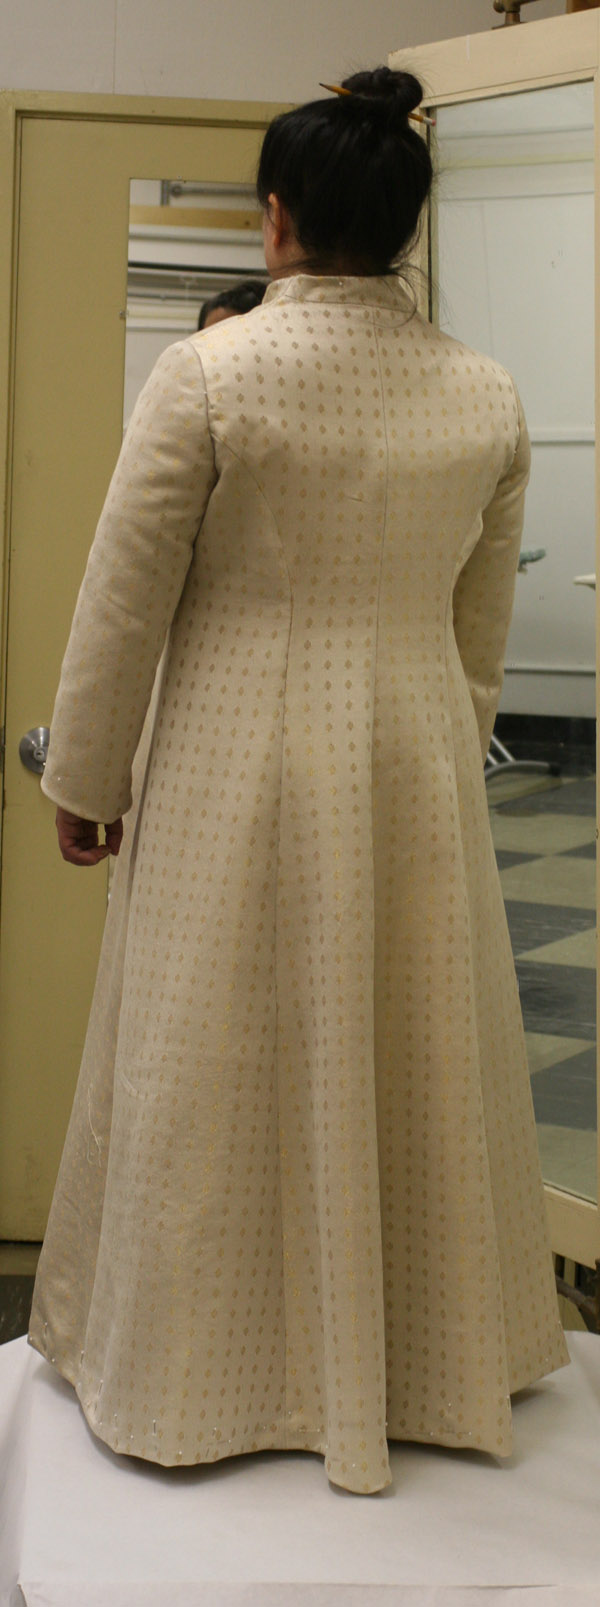 Rear view of the partially finished handwoven wedding coat